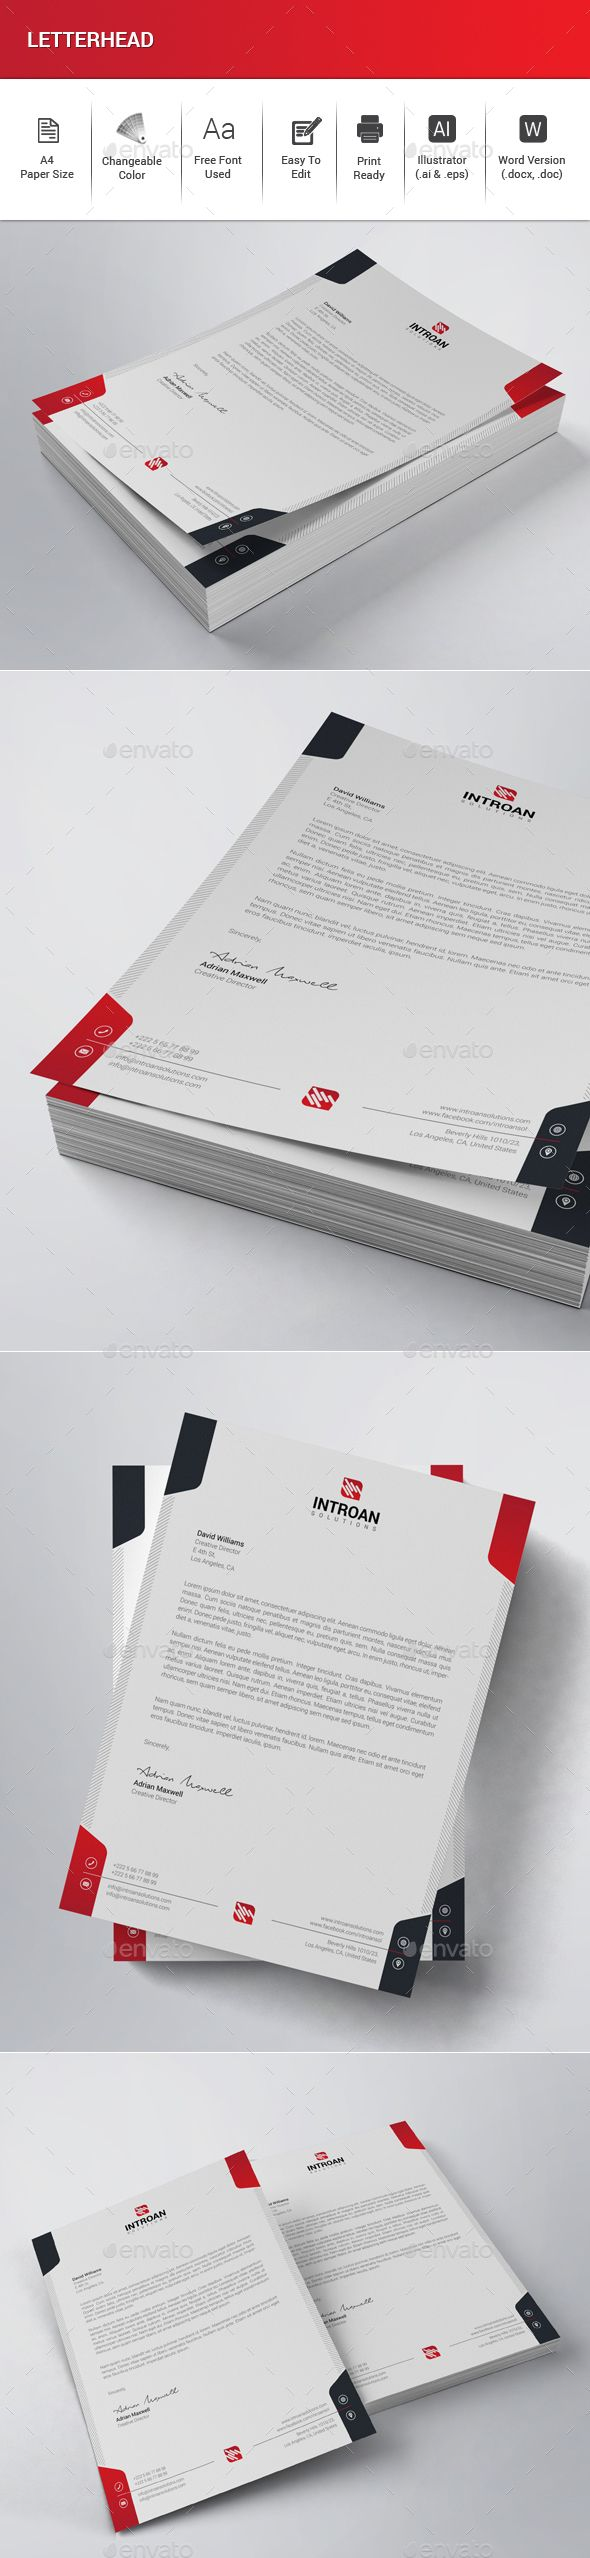 739 Best Letterhead Design Templates Images On Pinterest Design